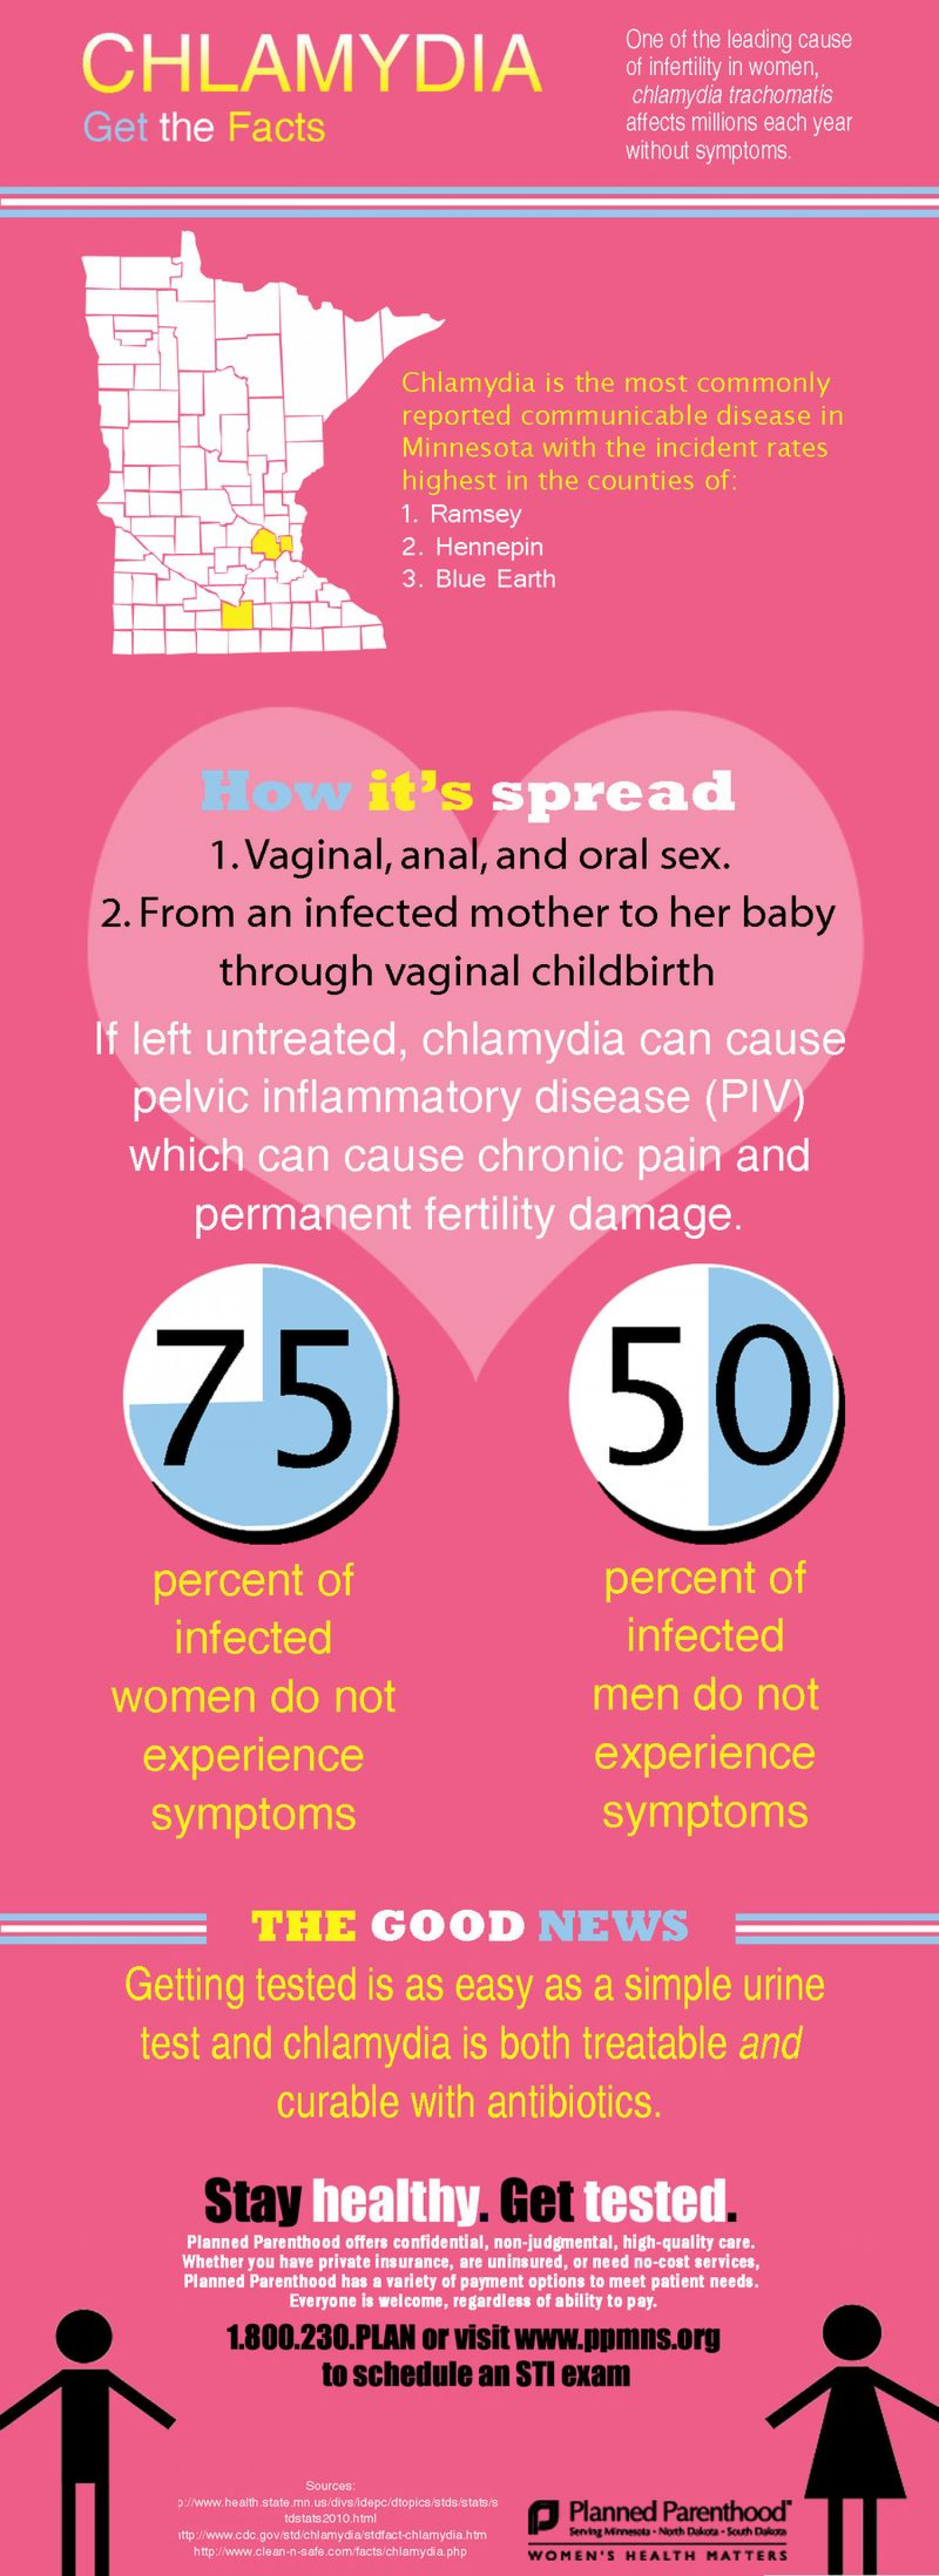 Chlamydia: Get the Facts  Infographic